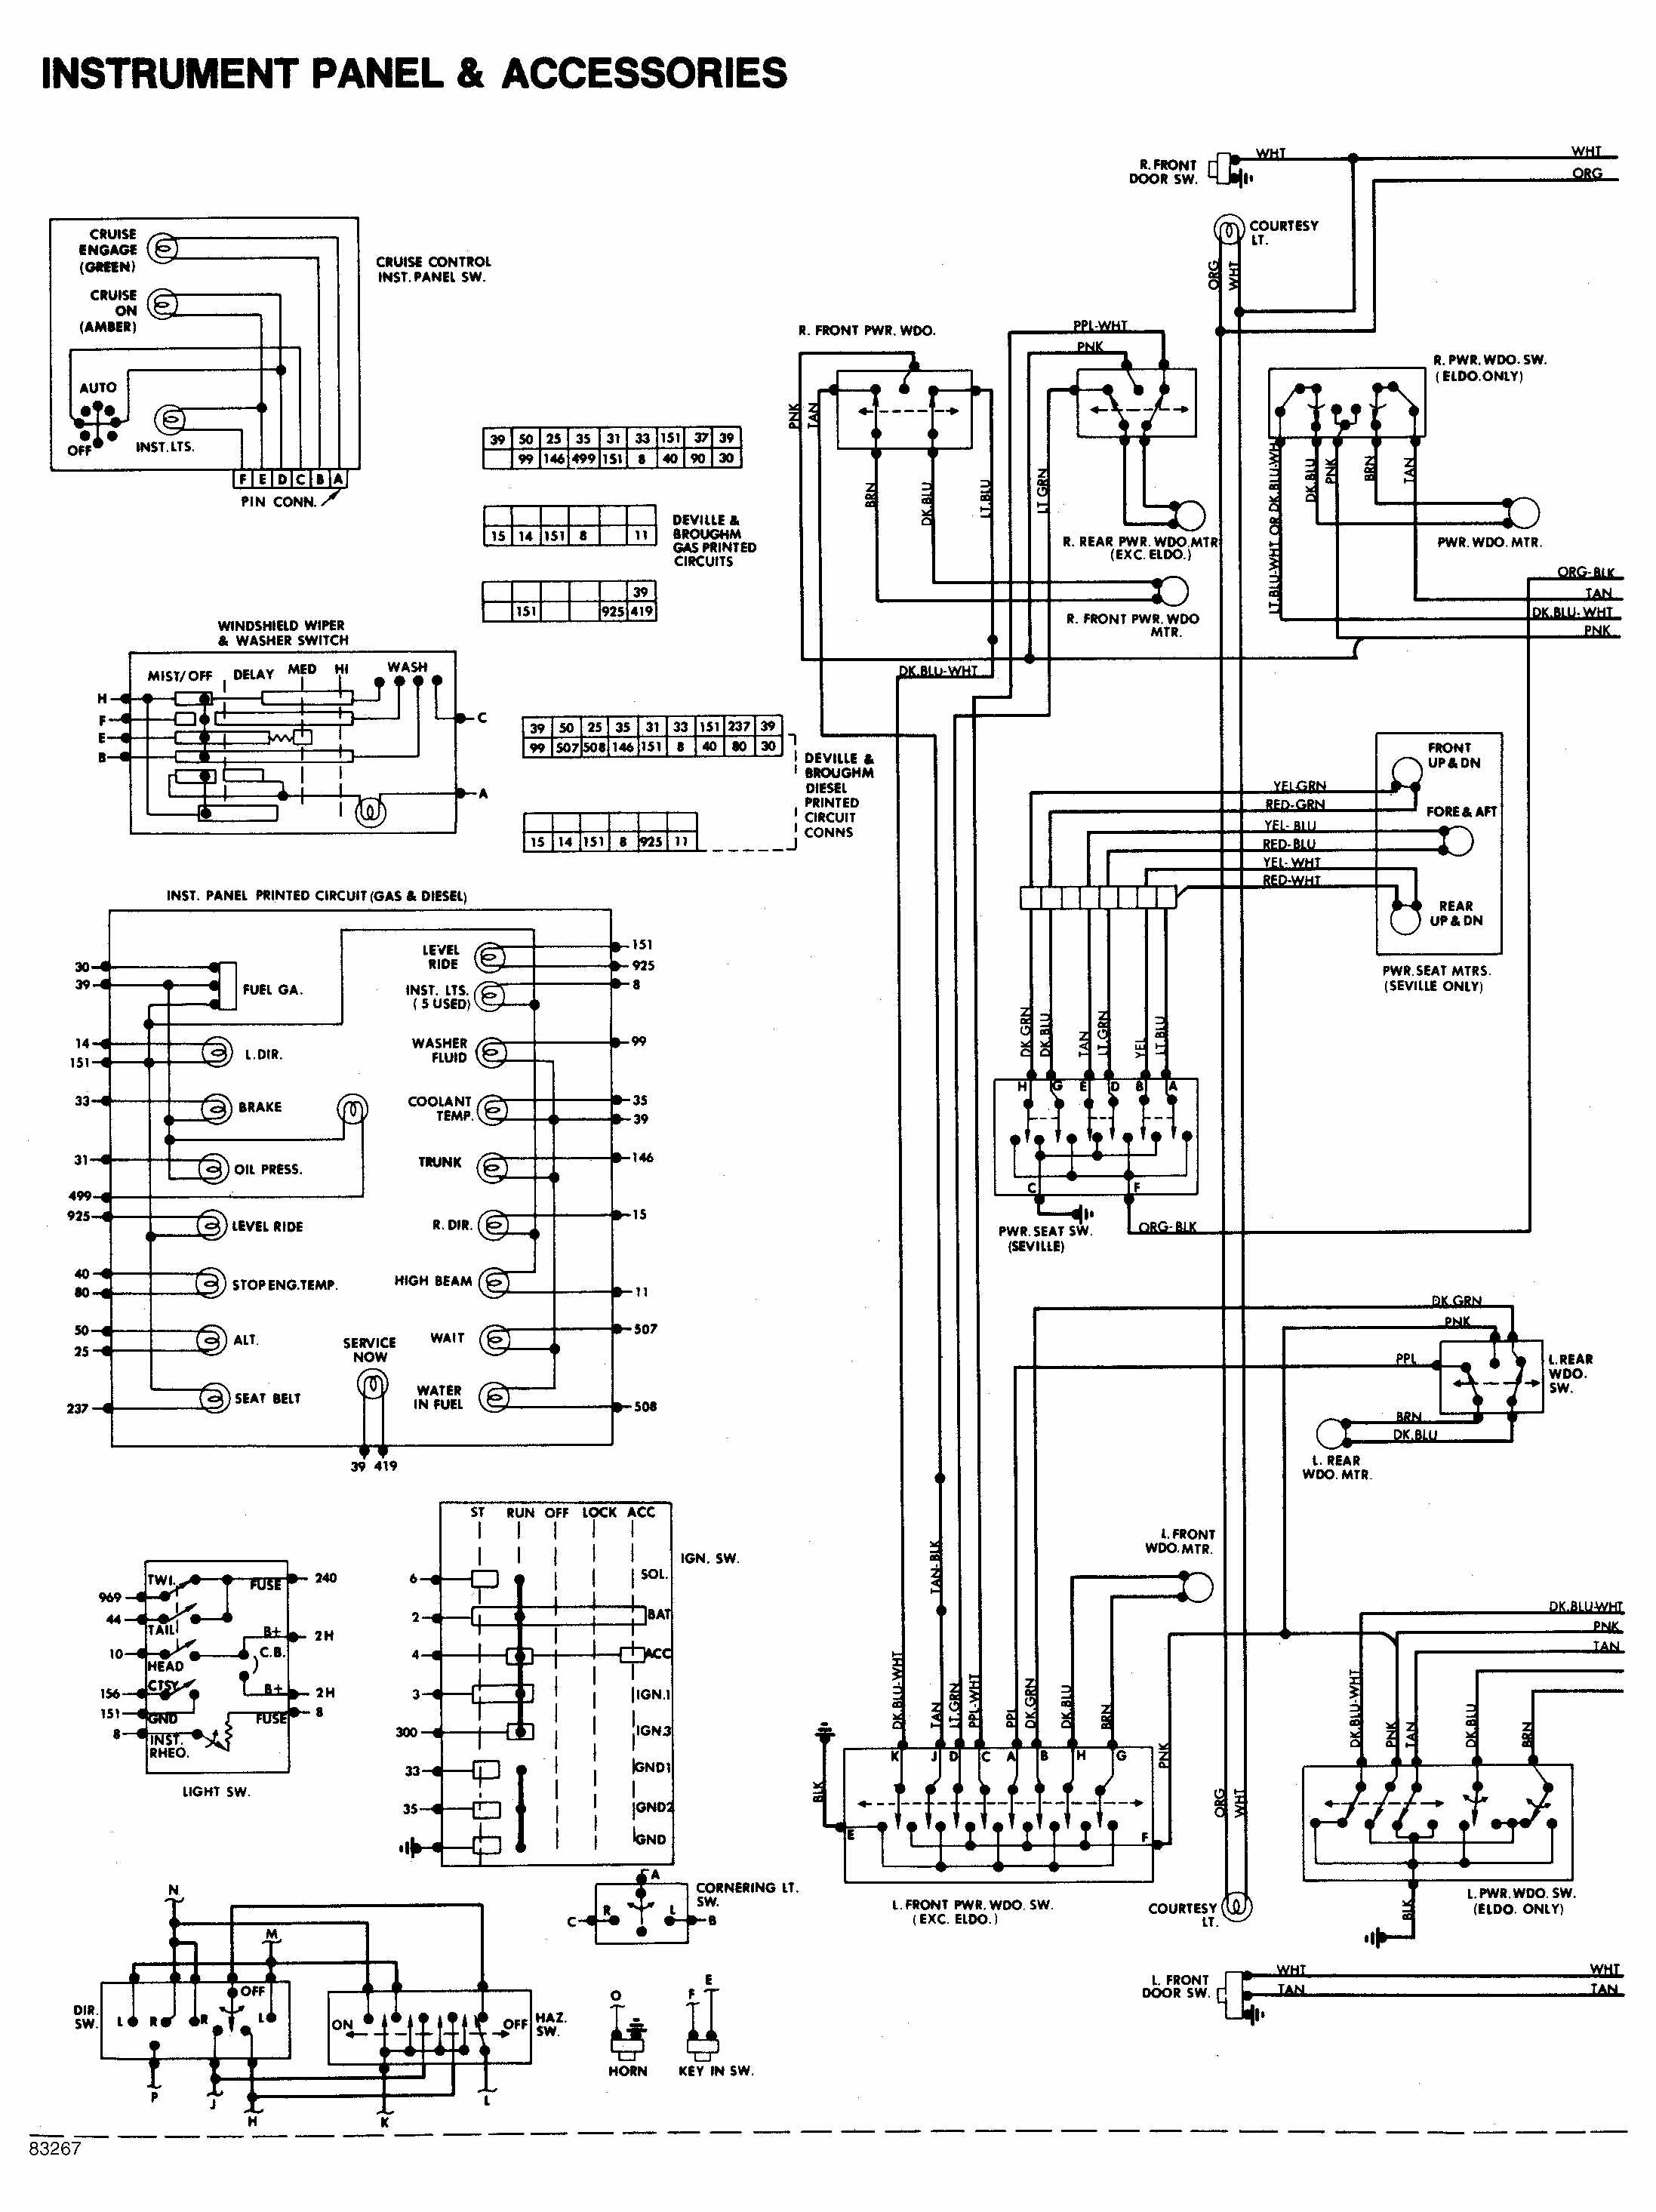 fleetwood wiring diagrams fleetwood image wiring 1968 cadillac wiring diagram 1968 auto wiring diagram schematic on fleetwood wiring diagrams